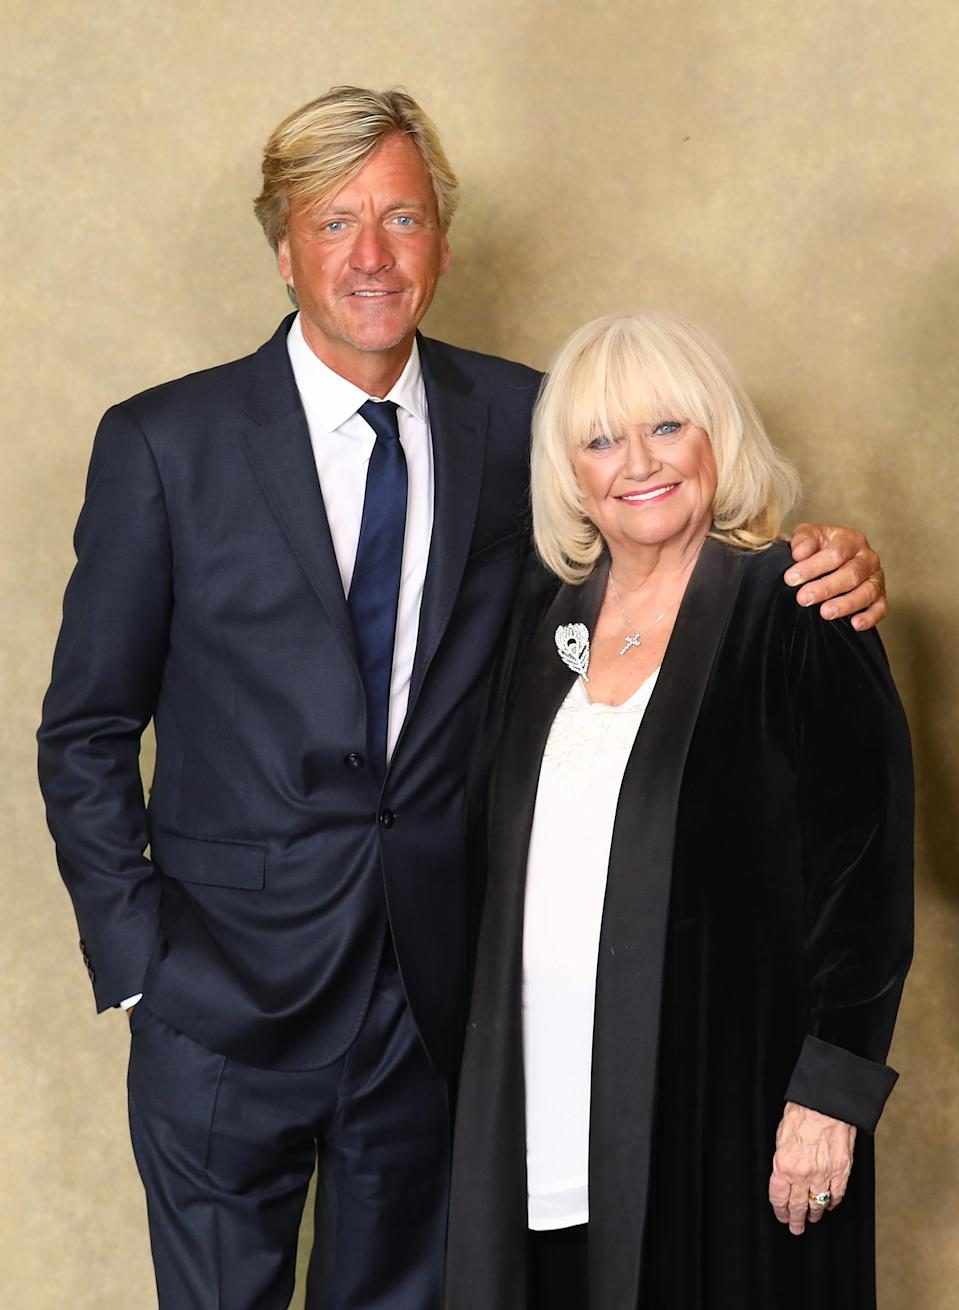 """Richard Madeley and Judy Finnigan attend a BAFTA tribute evening to long running TV show """"This Morning"""" at BAFTA on October 1, 2018 in London, England. (Photo by Tim P. Whitby/Tim P. Whitby/Getty Images)"""